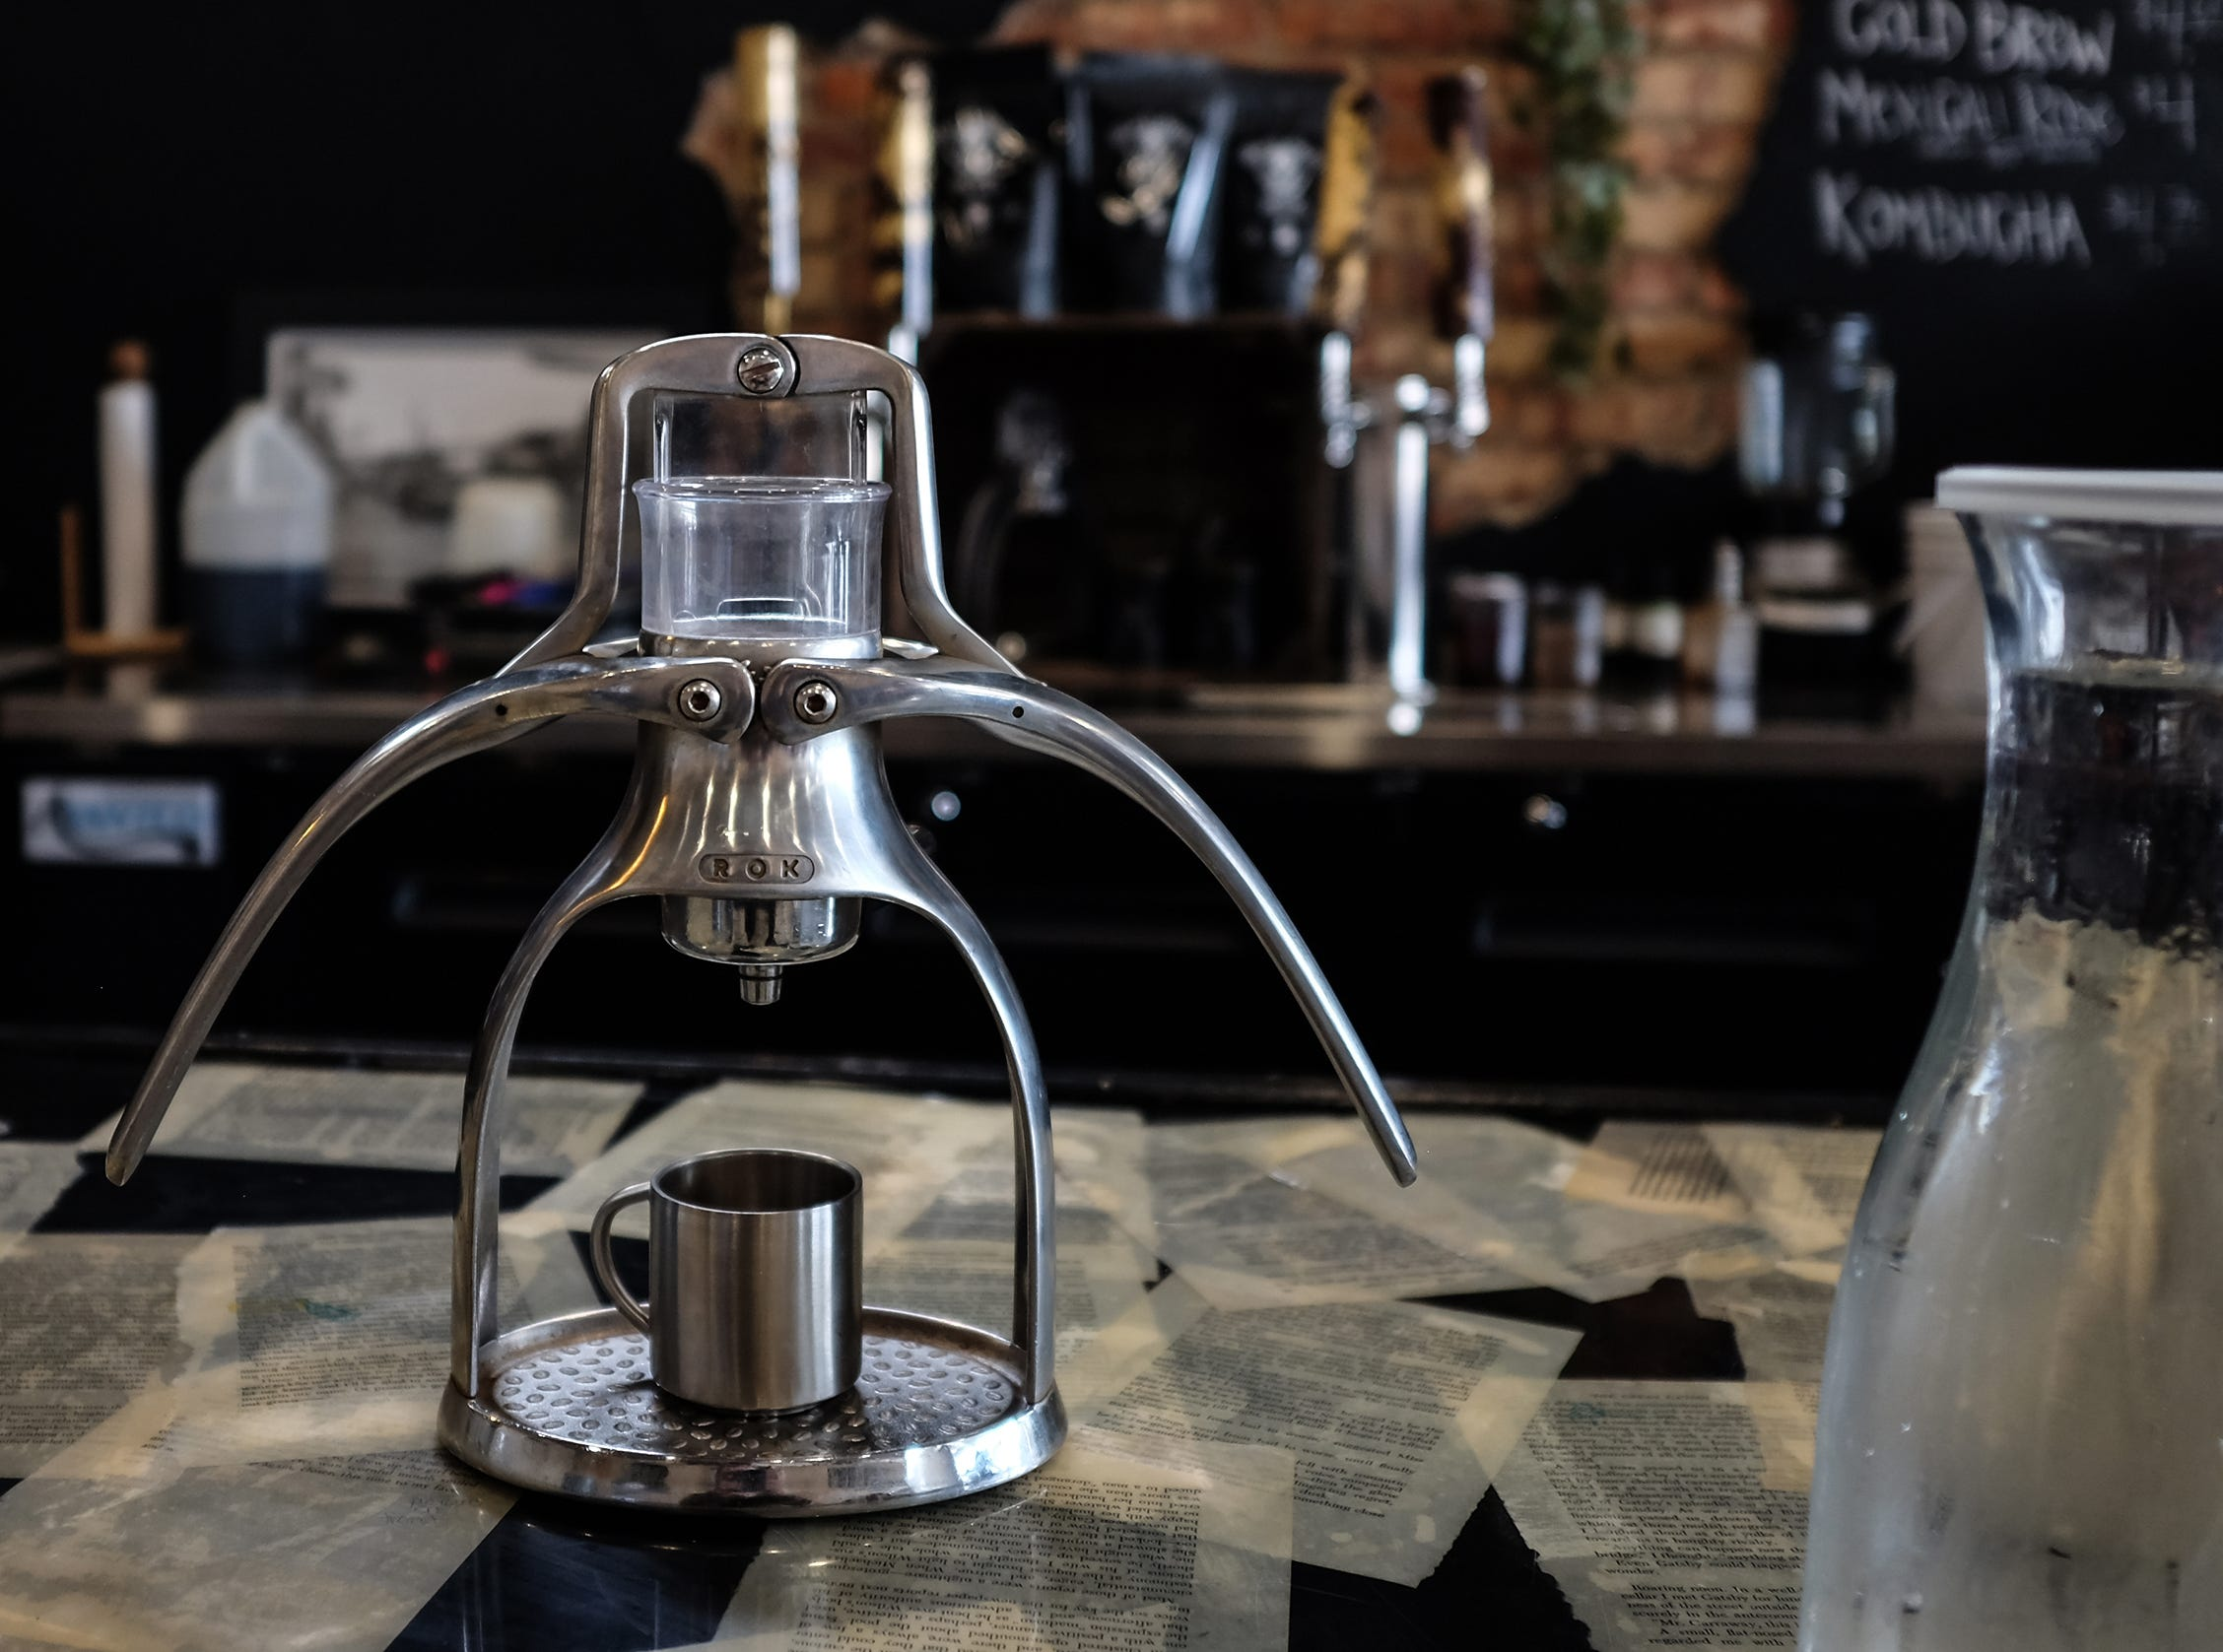 A hand operated expresso coffee press at The Crafted Bean in Lansing is on display.